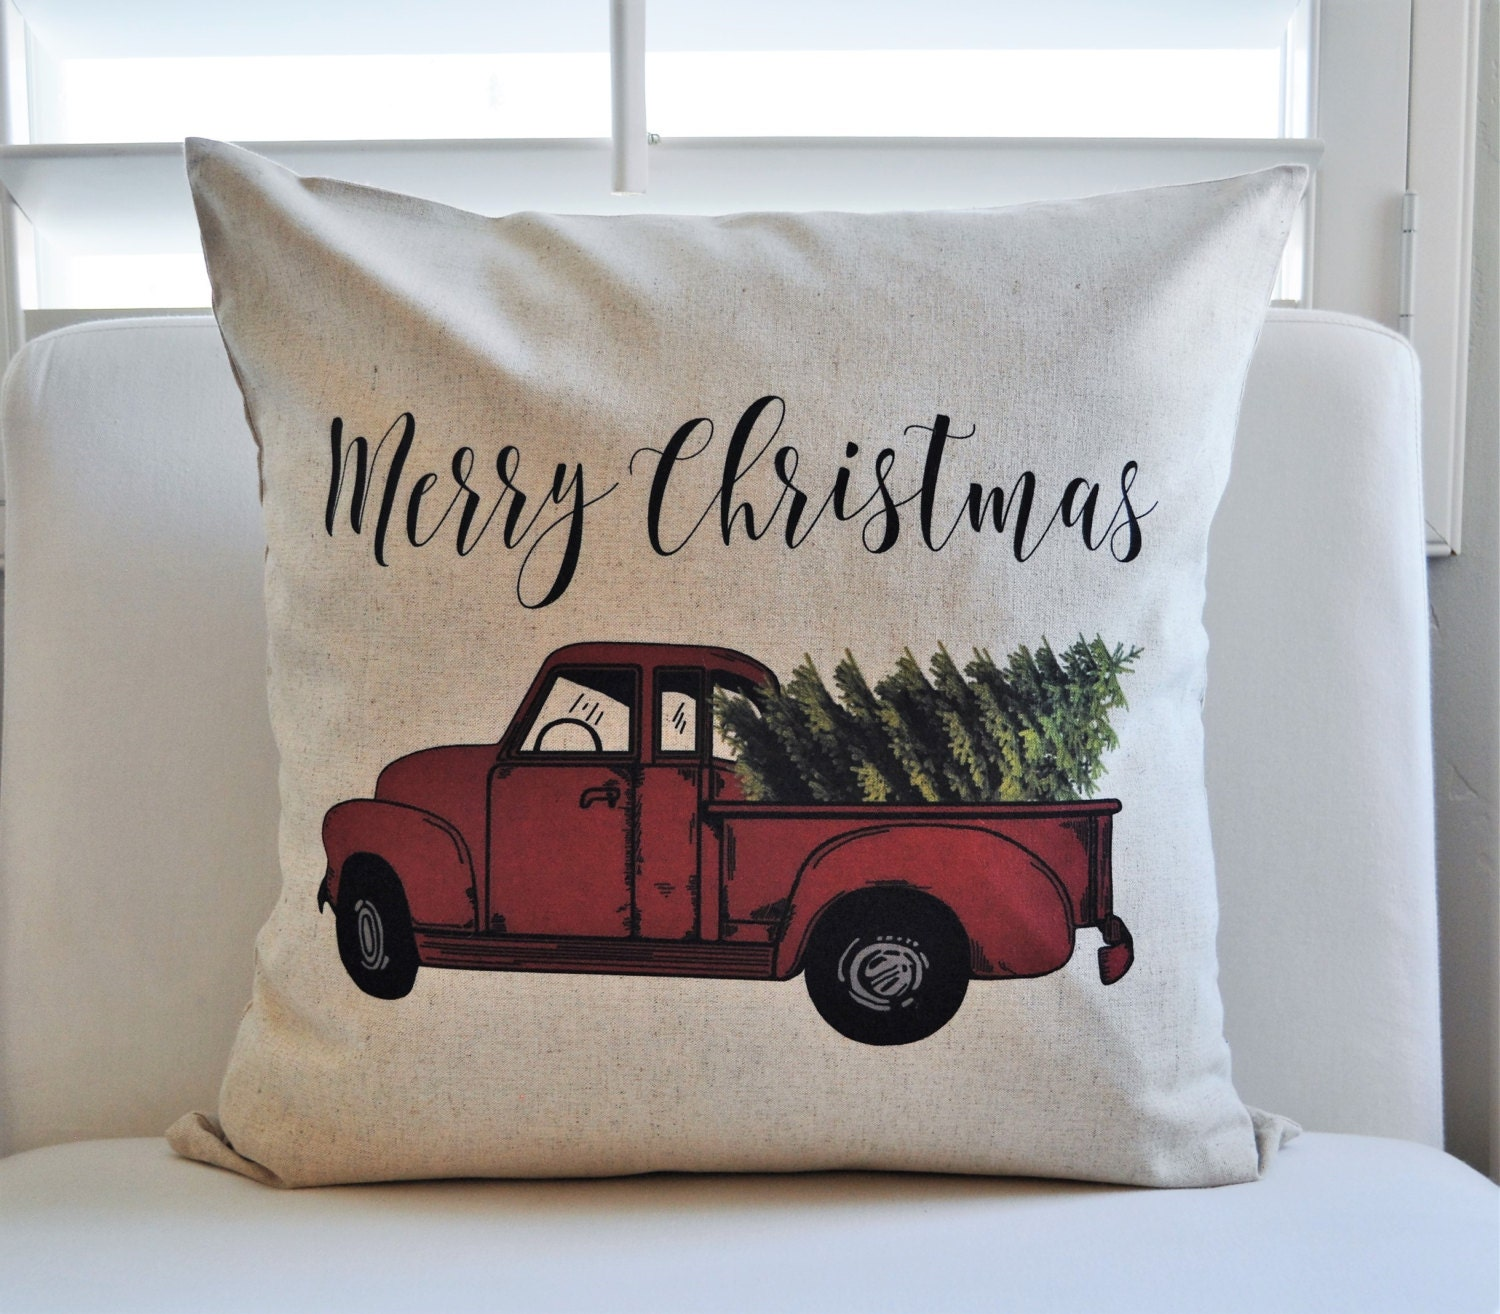 sale christmas pillow cover christmas decor christmas tree merry christmas pillow hand drawn vintage christmas red